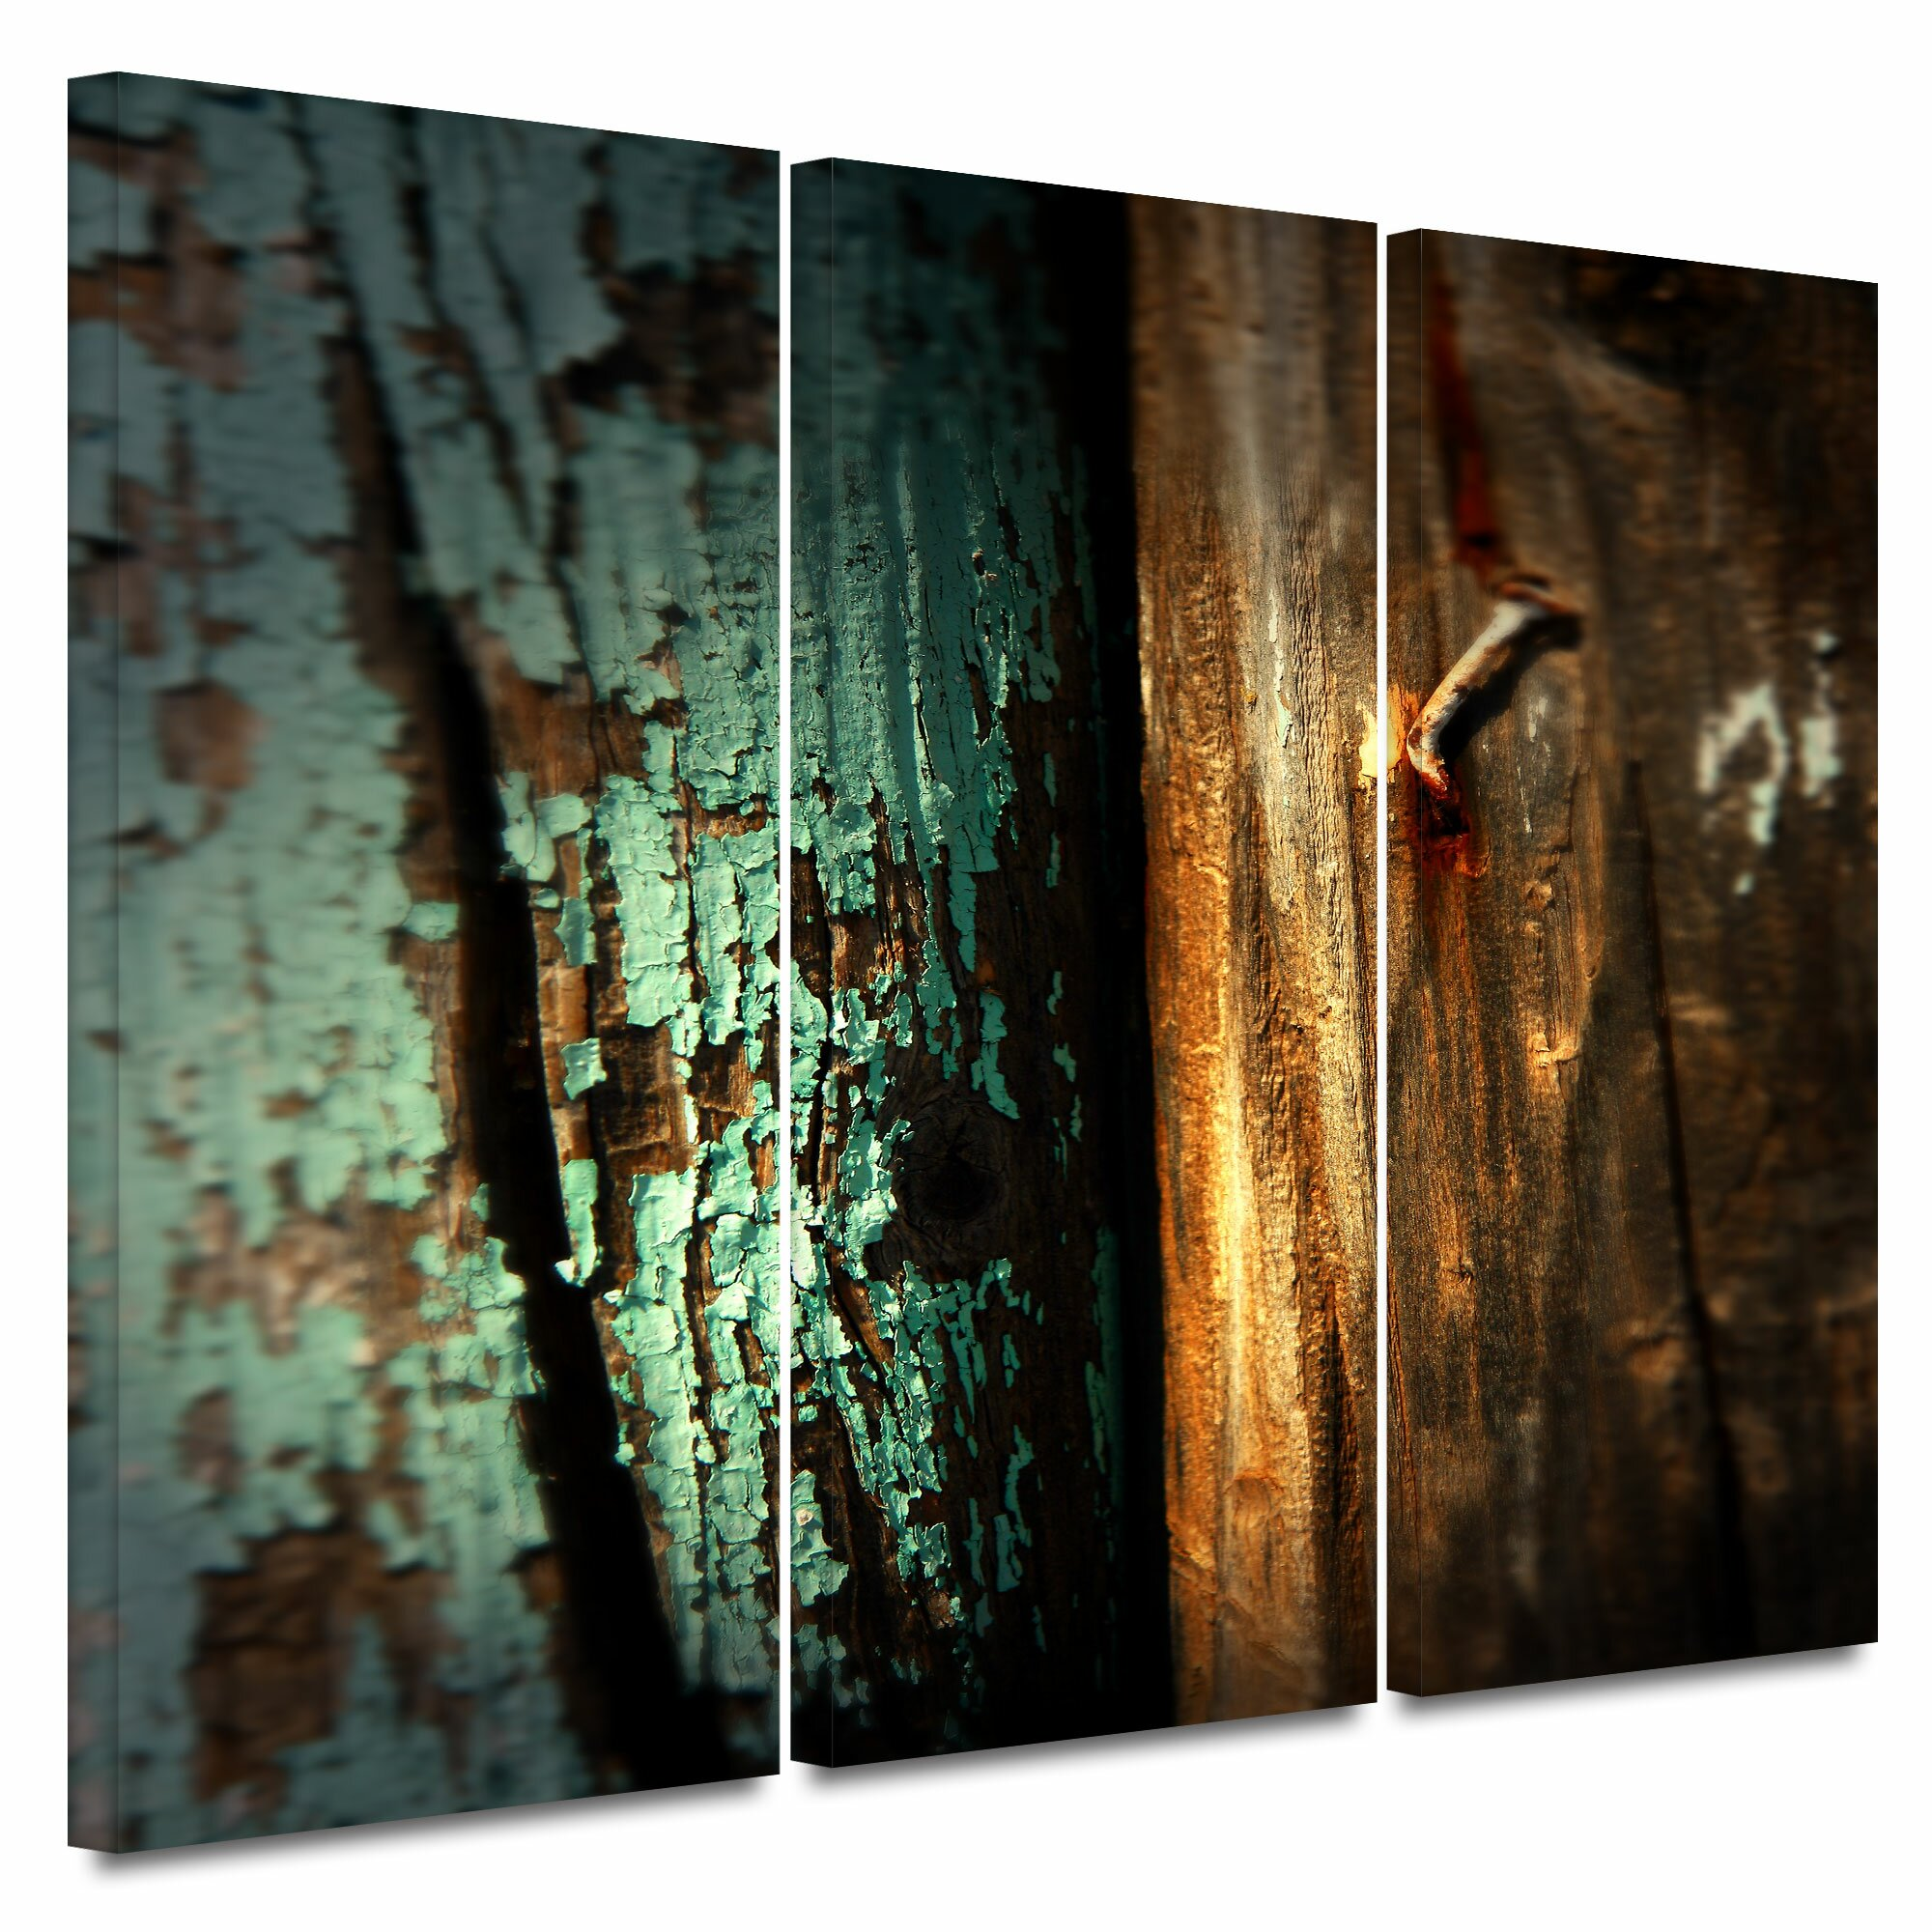 Wall Decor Ross : Artwall quot wood nail by mark ross piece photographic